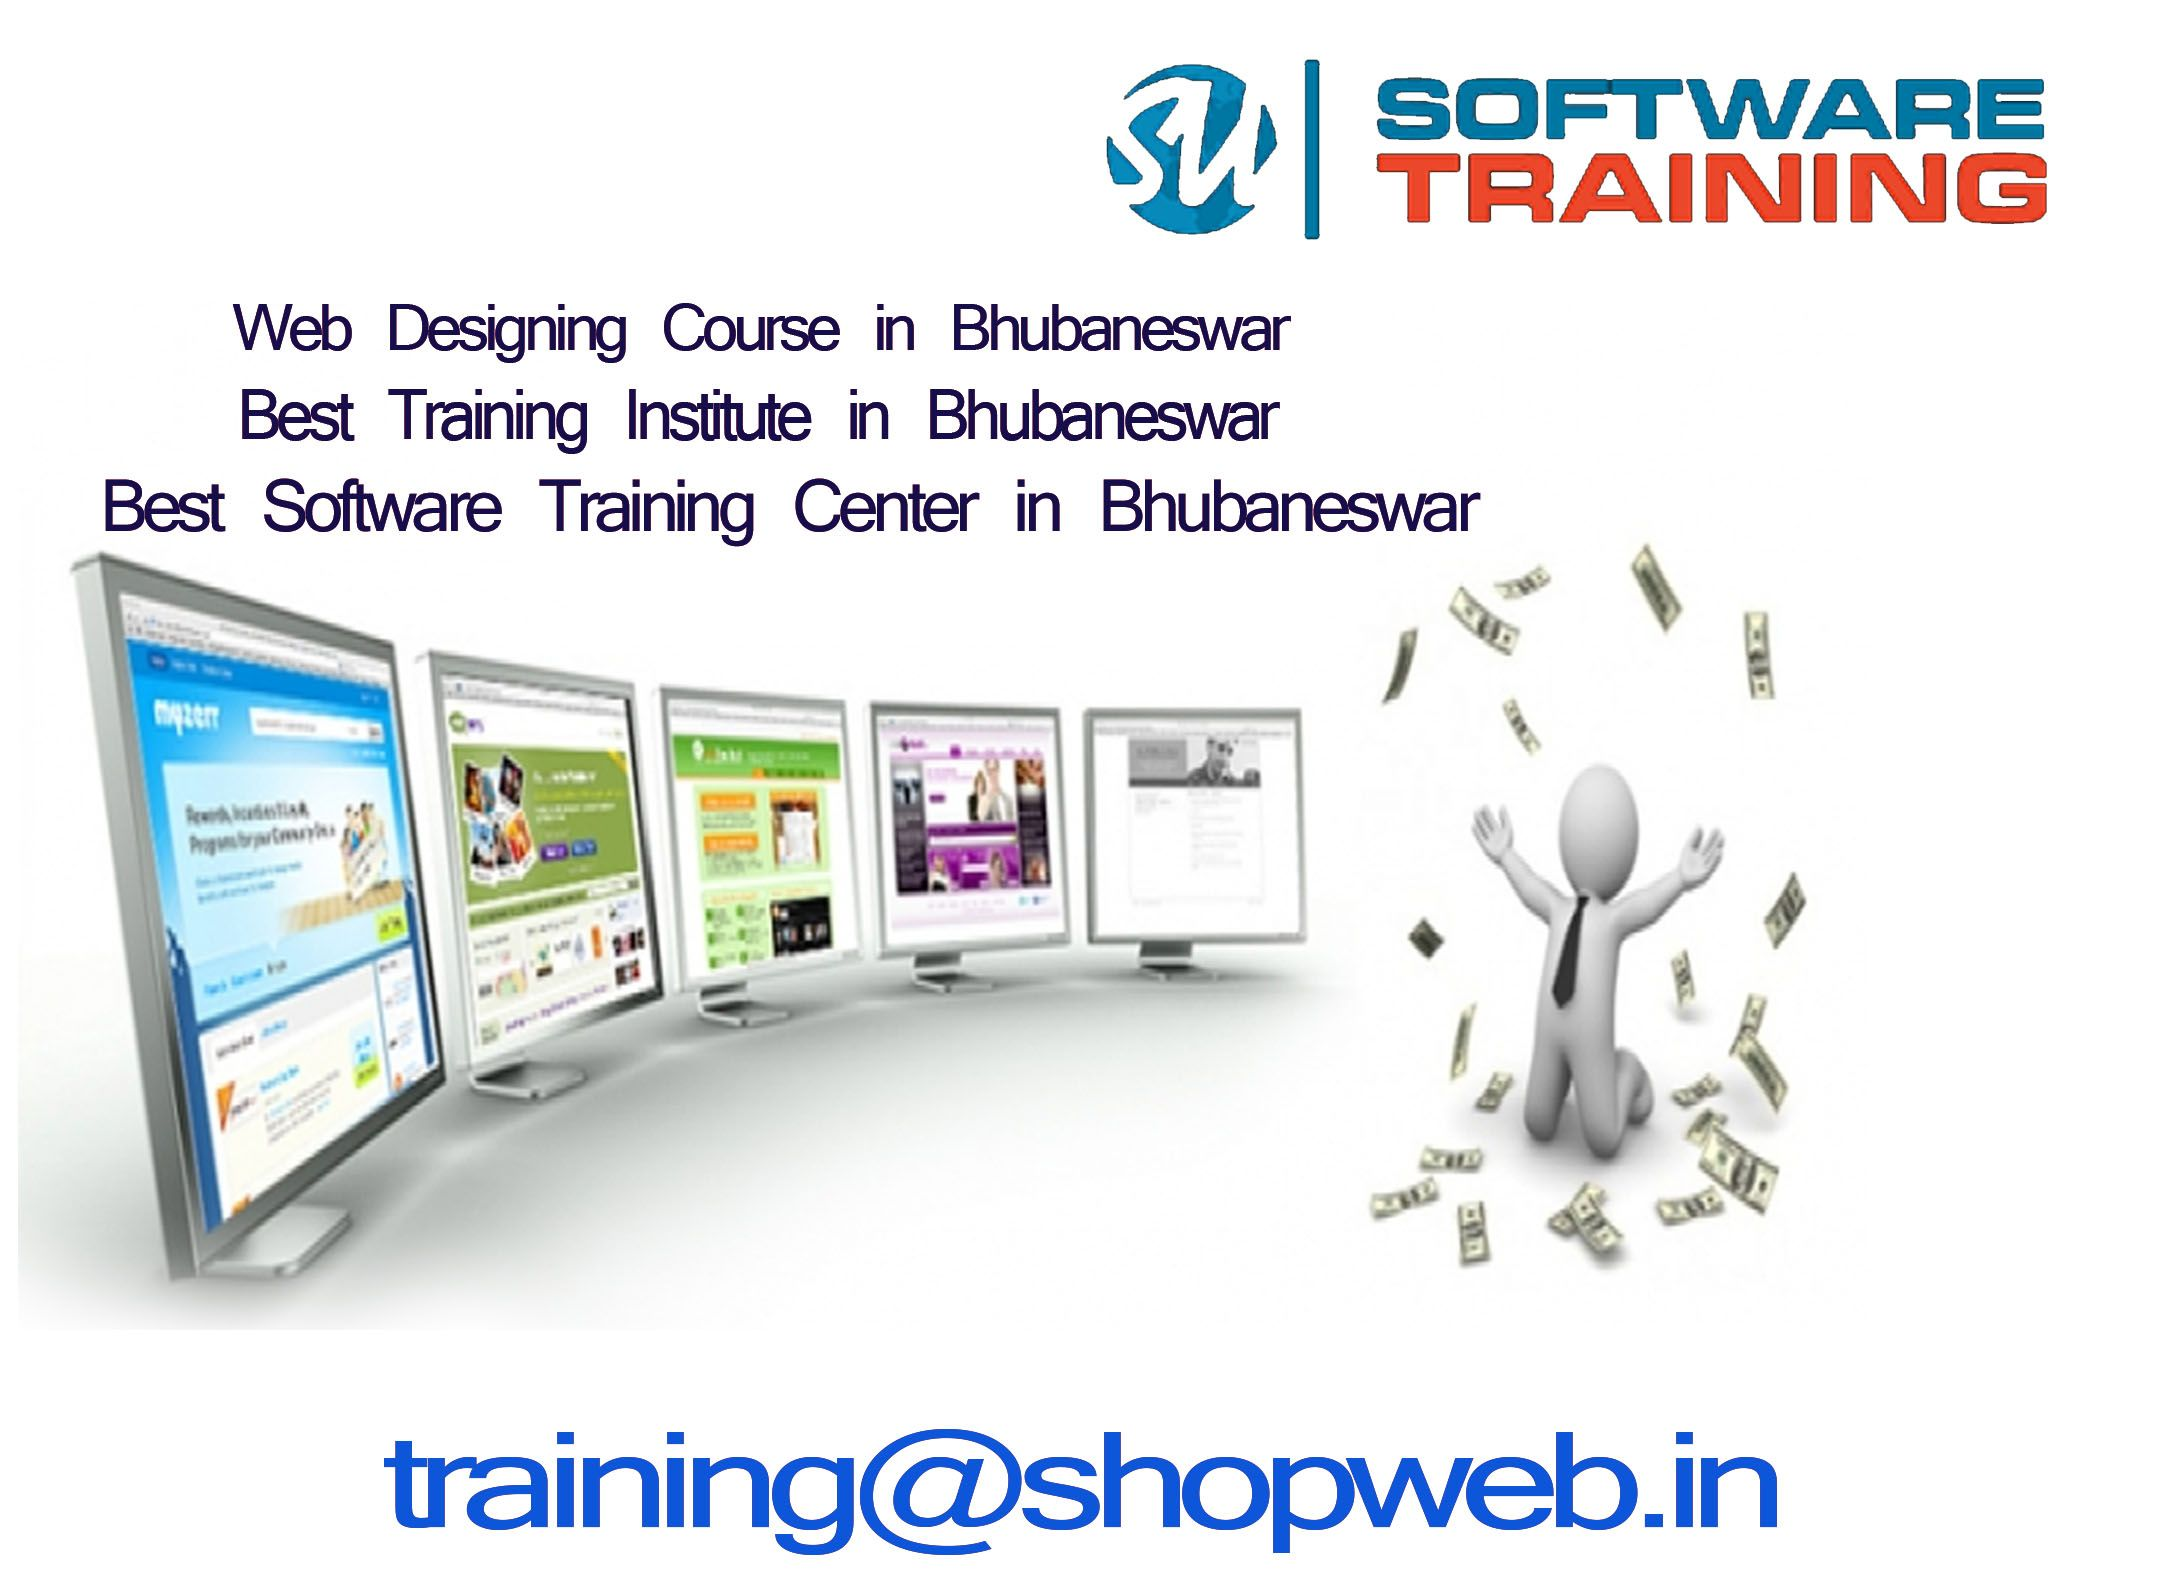 Shopweb Is The Web Designing Course In Bhubaneswar Till Now We Ve Got With Success Trained Over Several Stu Bhubaneswar Web Design Course Web Design Training